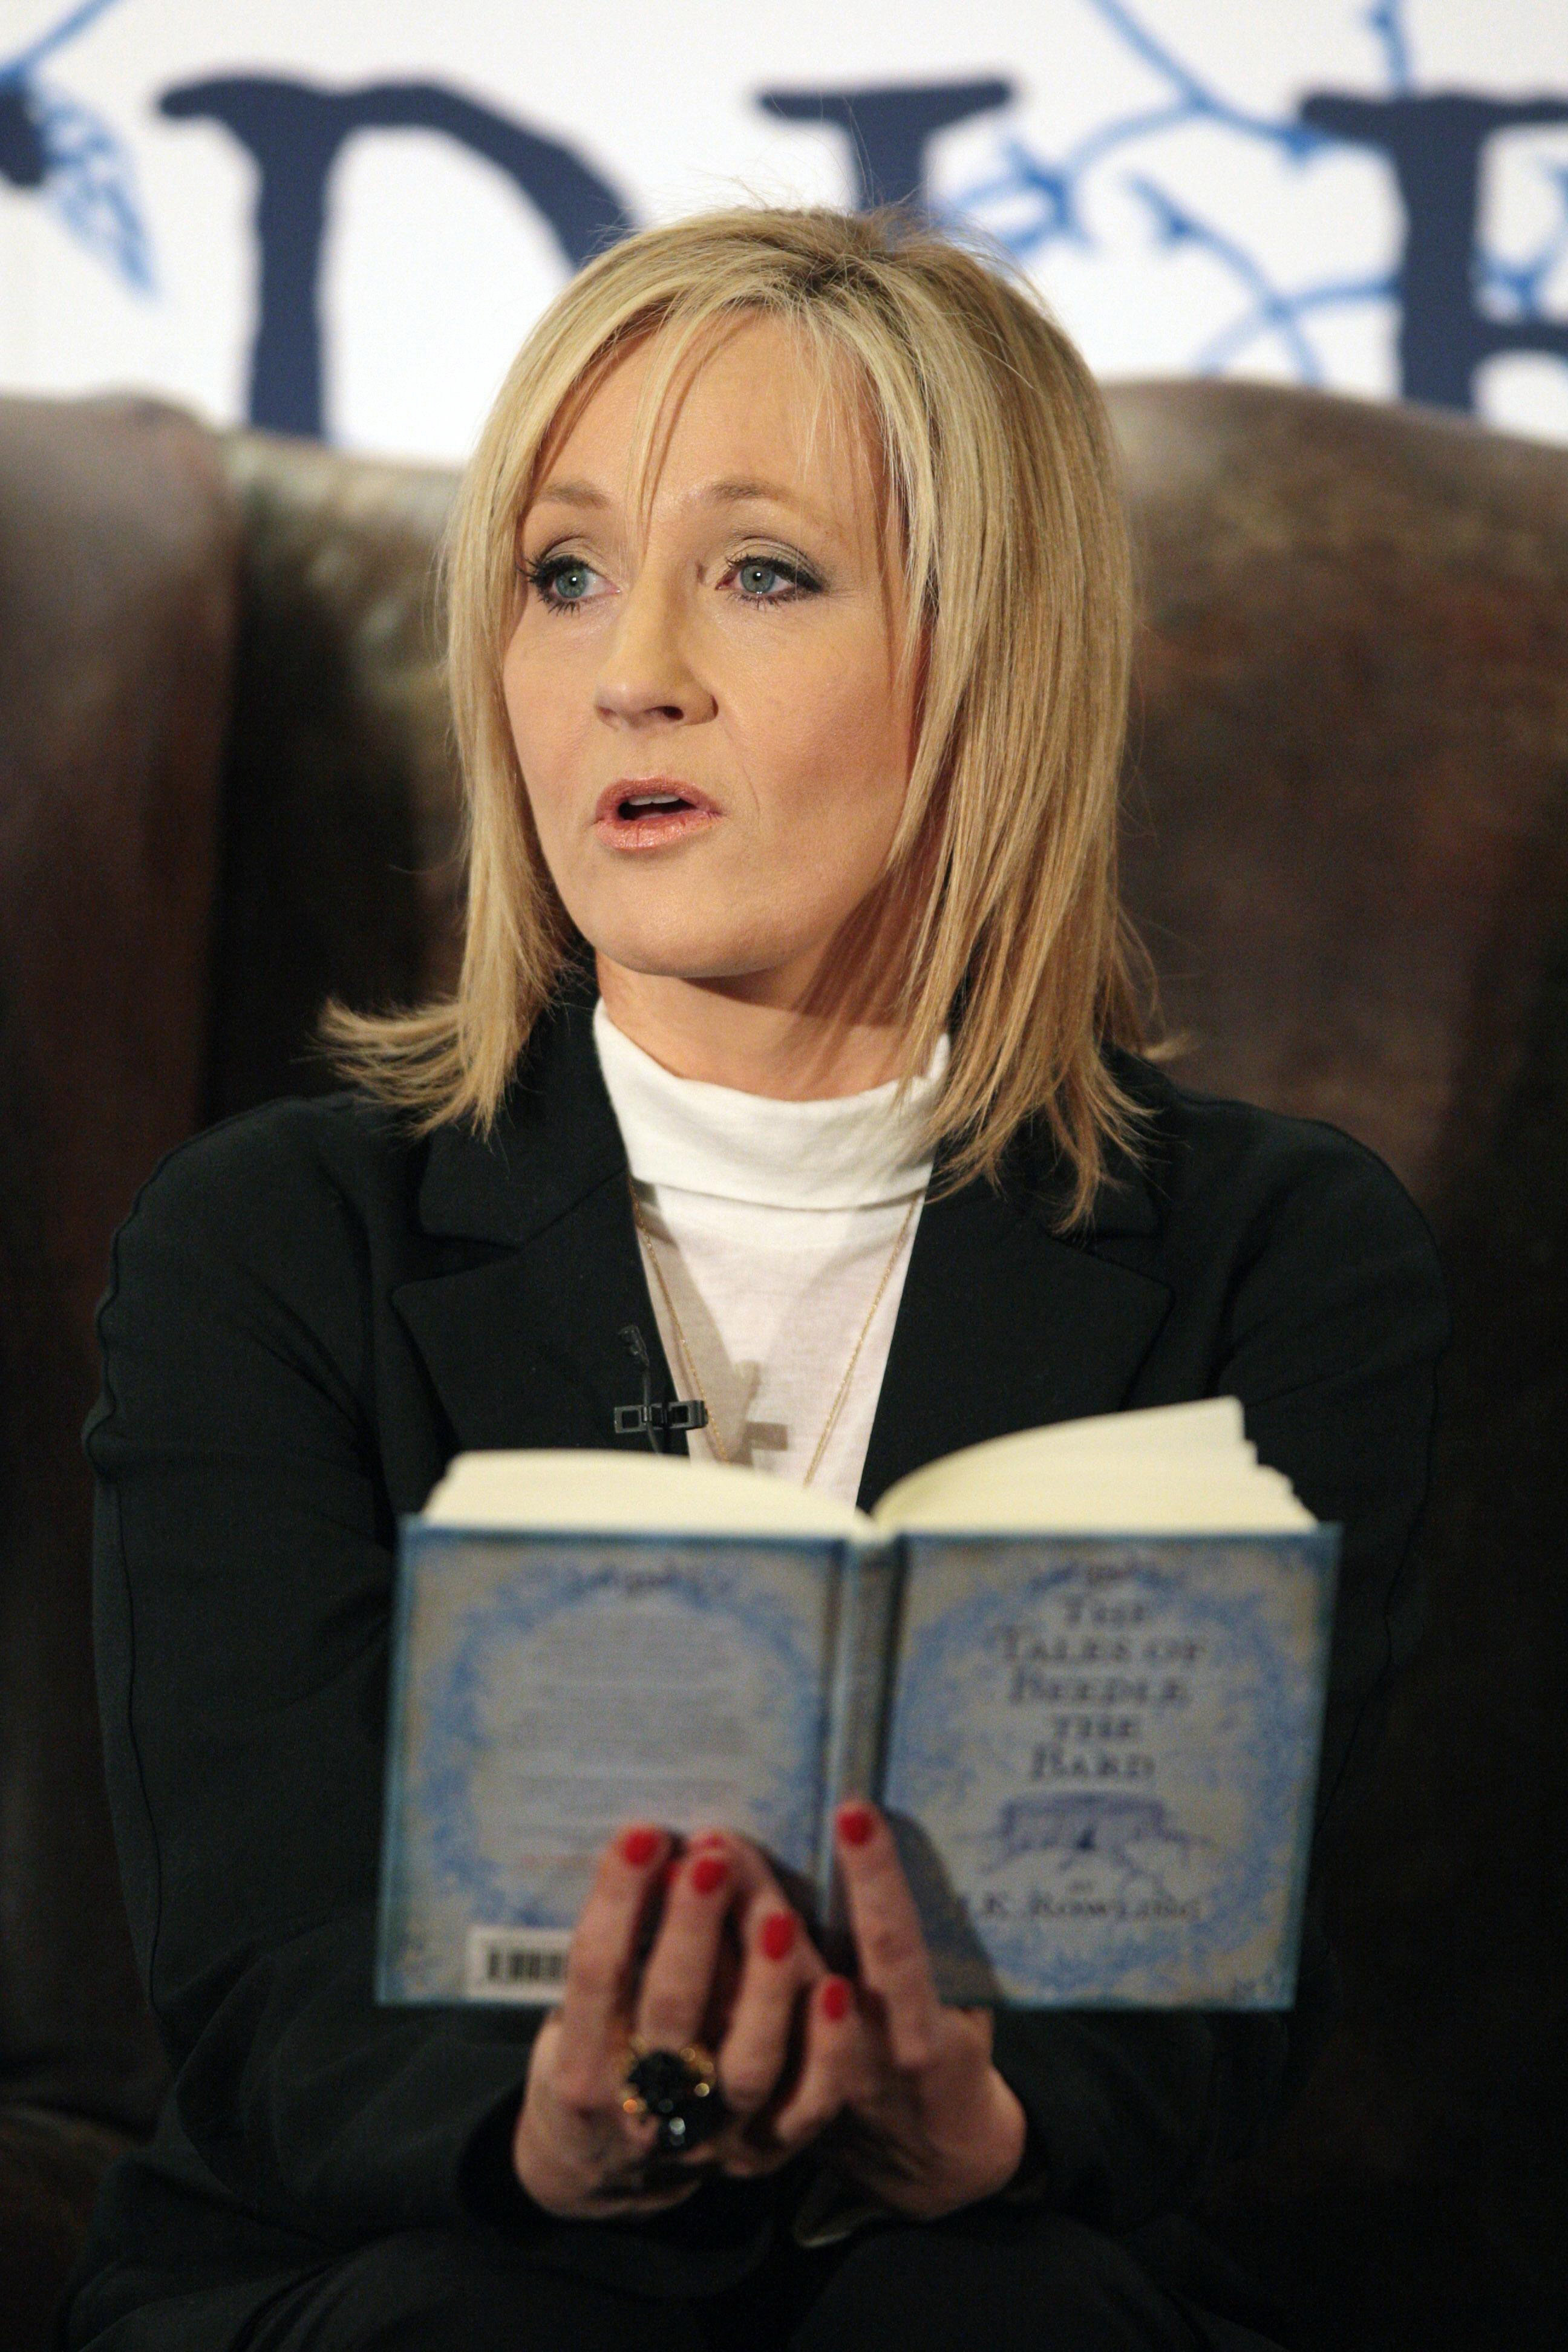 Photo of J.K. Rowling reading a book